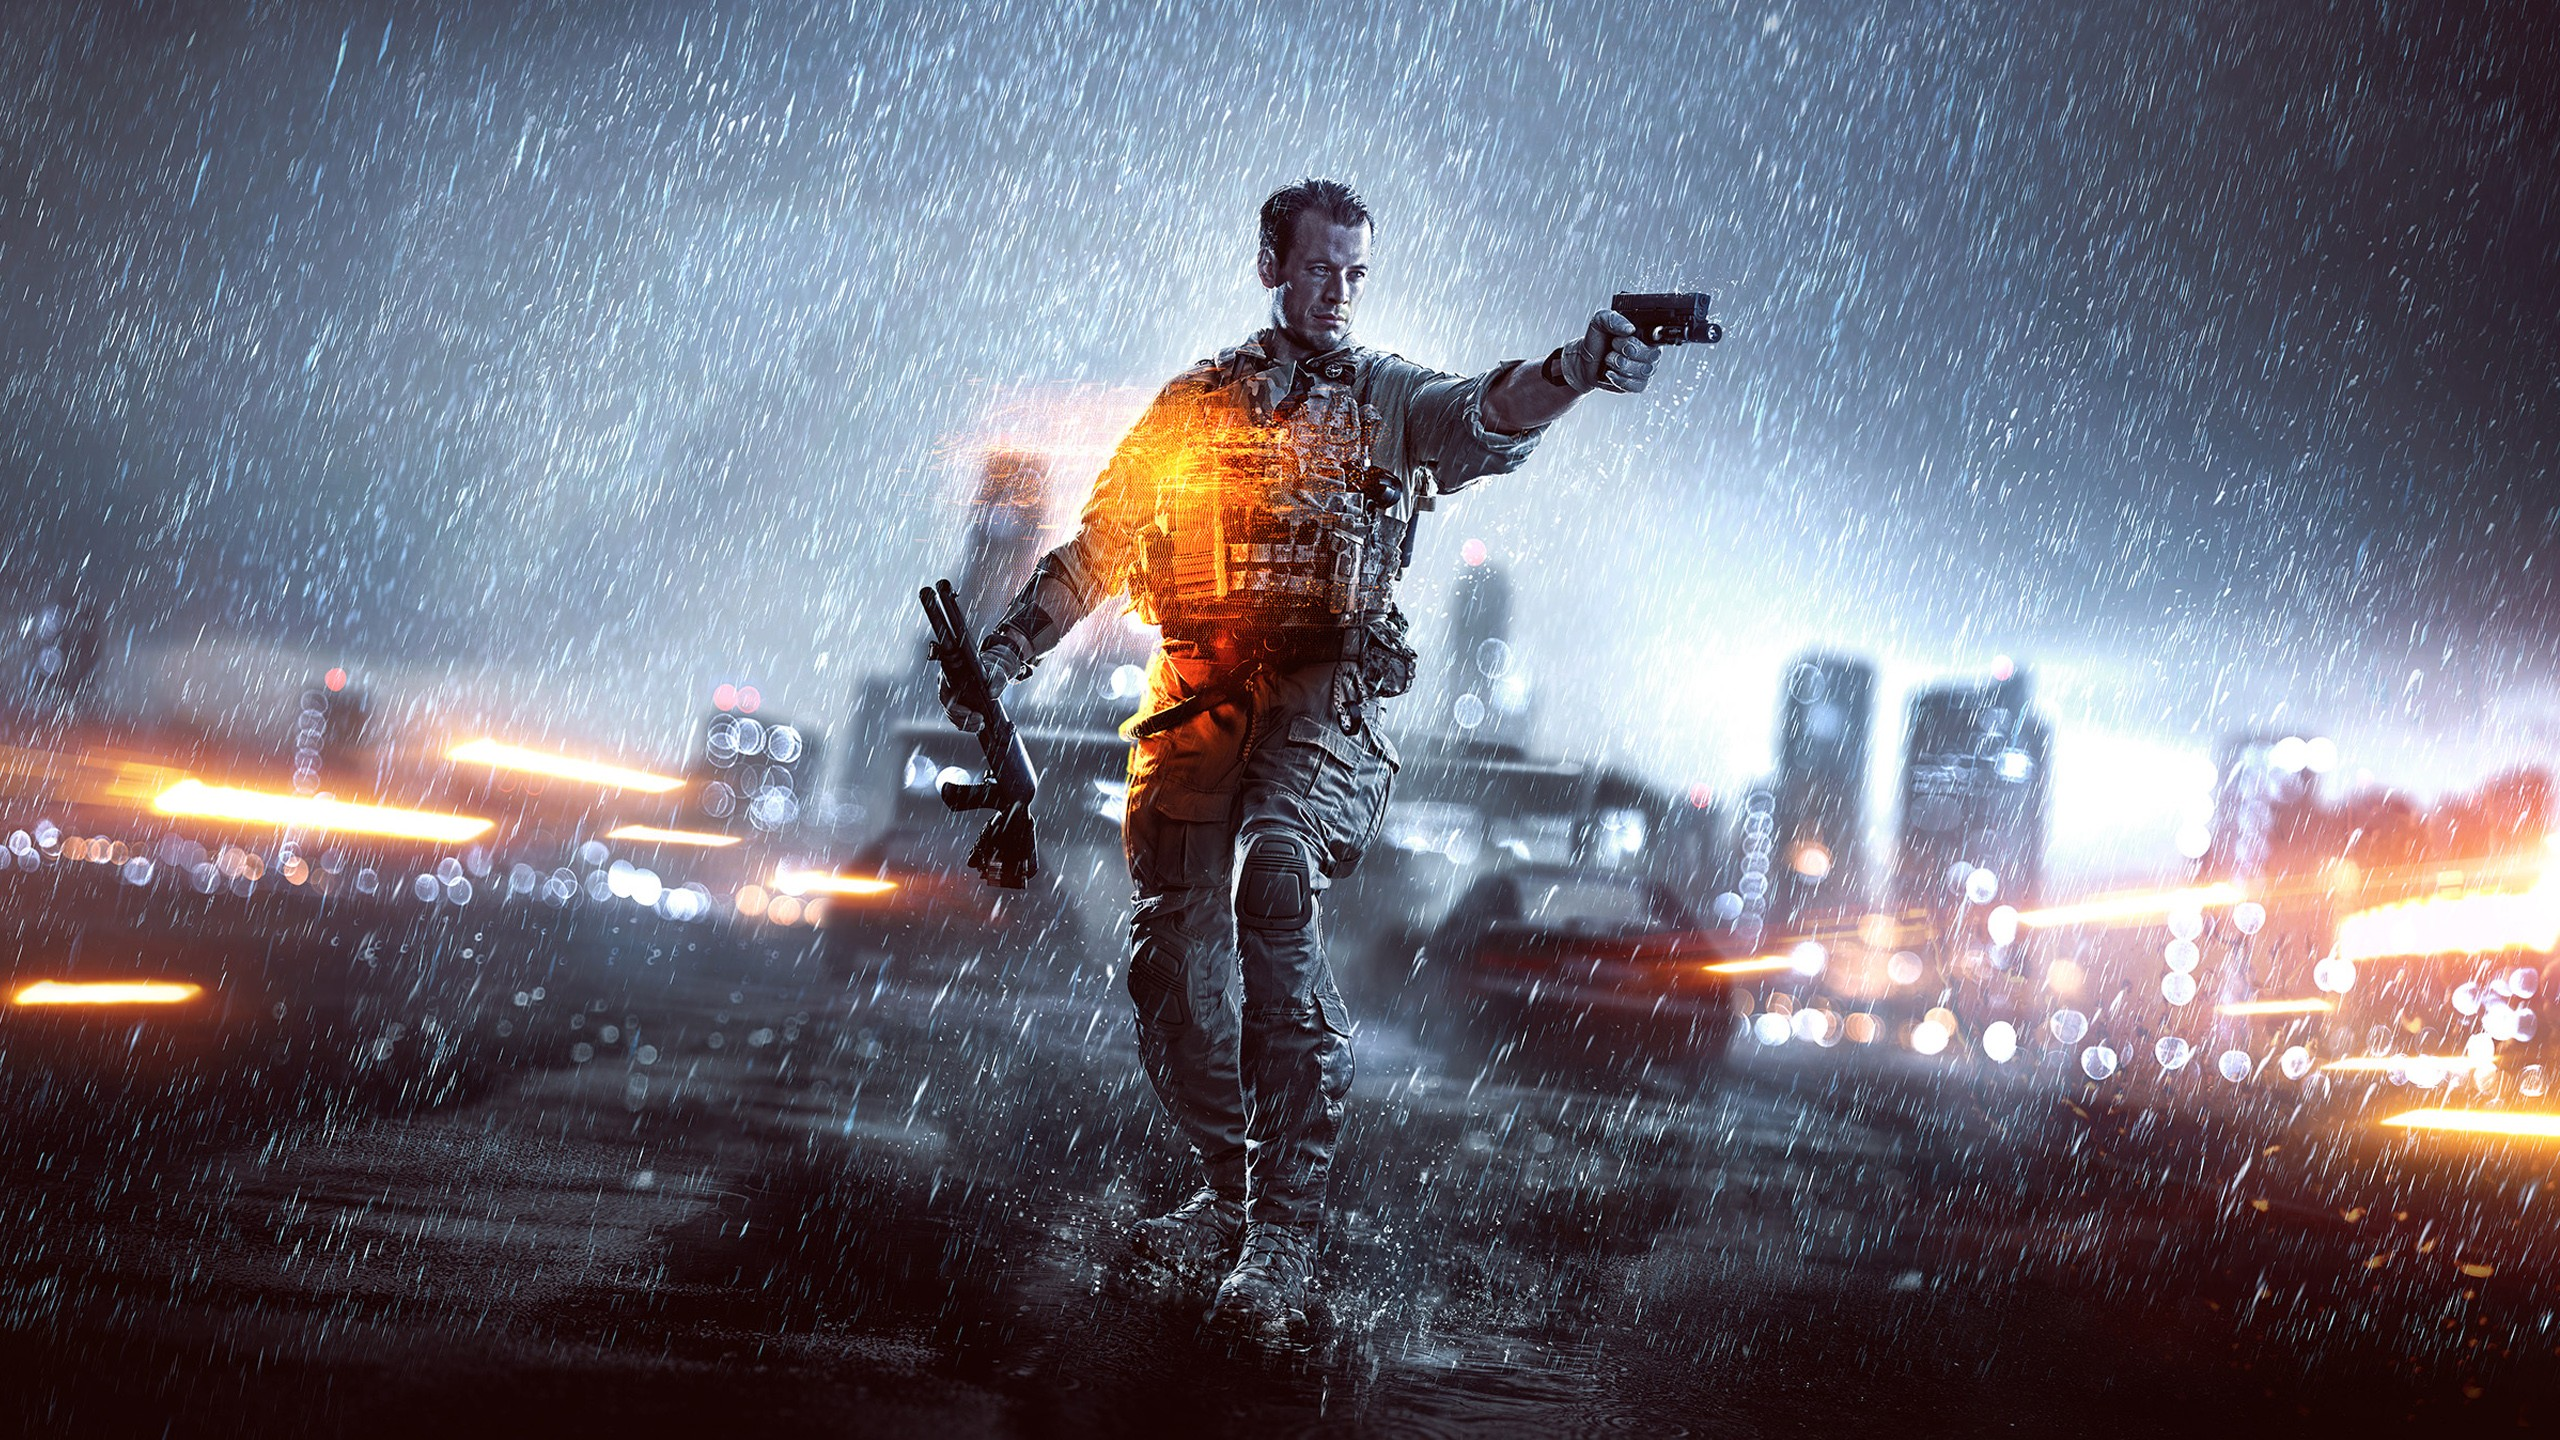 2048x1152 battlefield 4 battlefest 2048x1152 resolution hd 4k published on january 24 2016 original resolution voltagebd Images